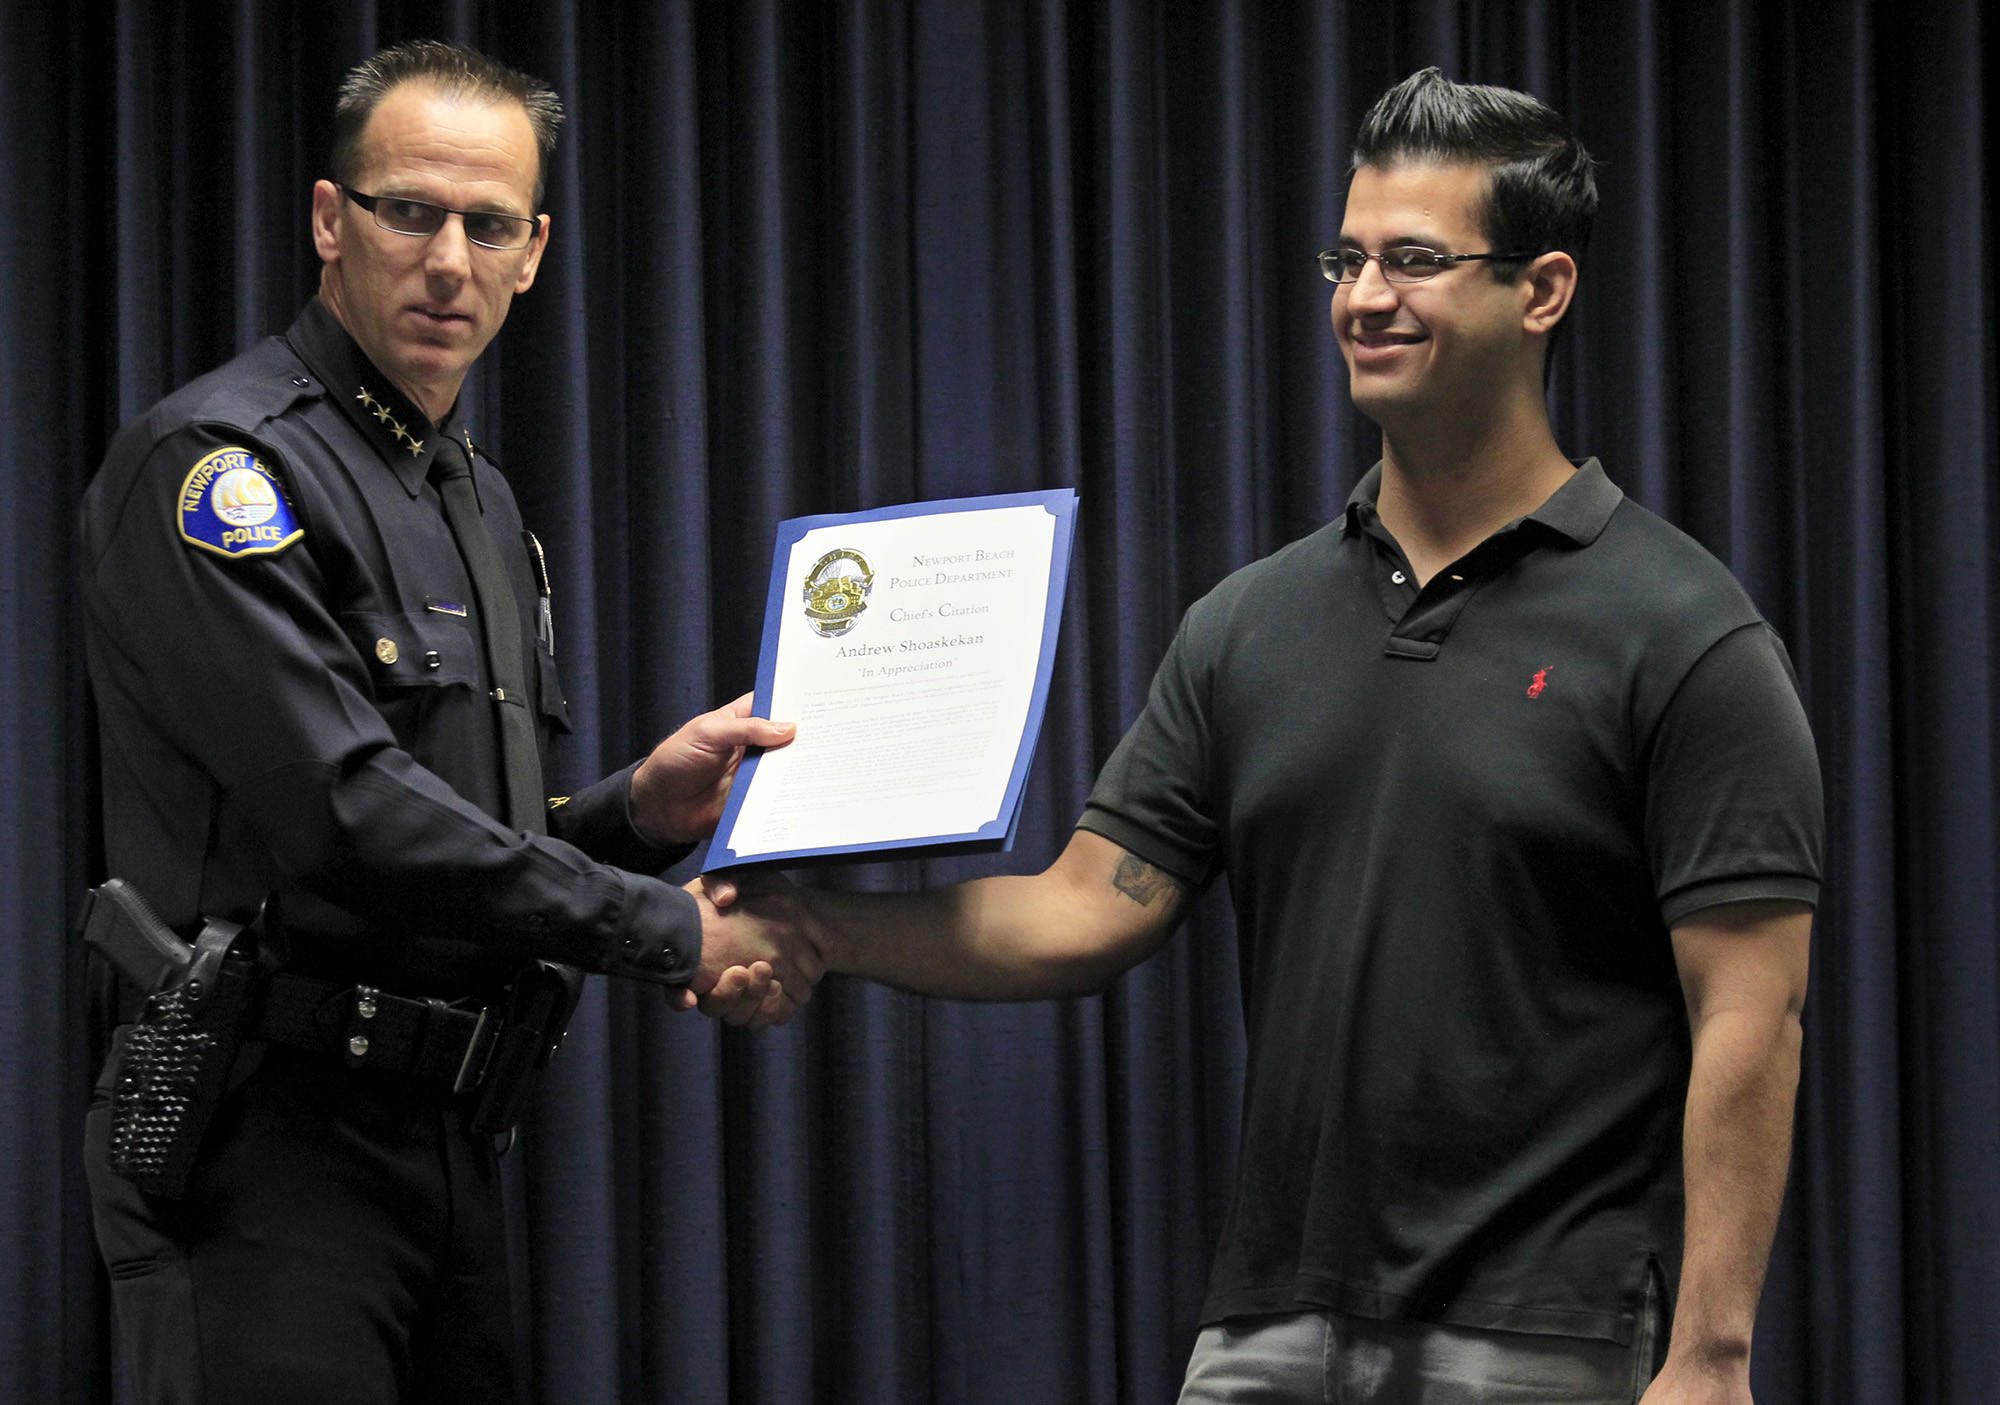 Newport Beach police chief Jay Johnson, left, hands Andrew Shoashekan a chief's citation during a ceremony at the Newport Beach Police Department on Thursday. Shoashekan was acknowledged for stopping a suicidal woman from jumping off an 18th floor balcony at Island Hotel in Newport Beach.